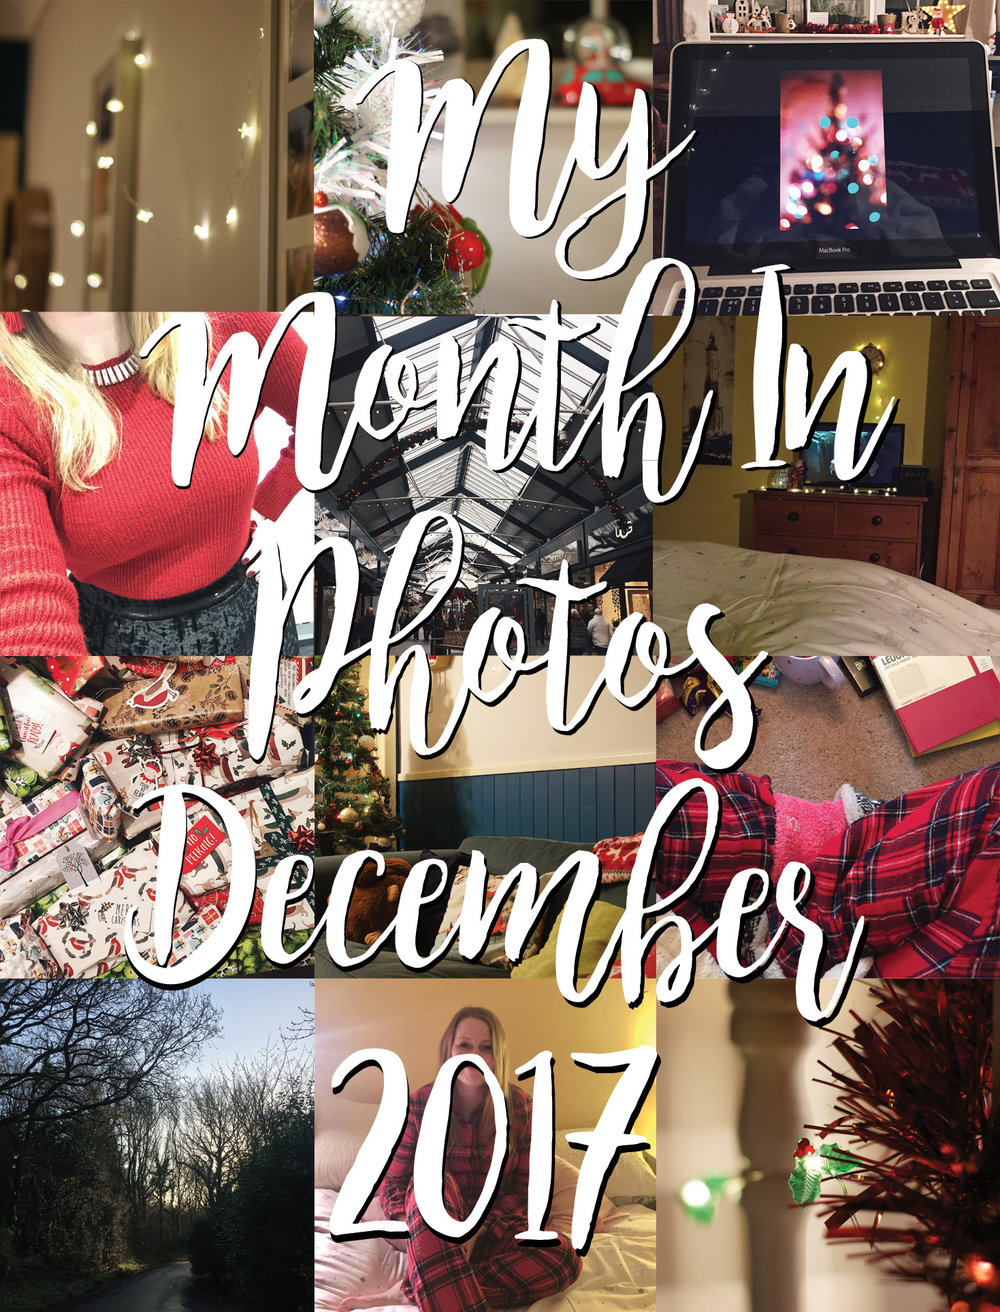 My Month In Photos - December 2017.